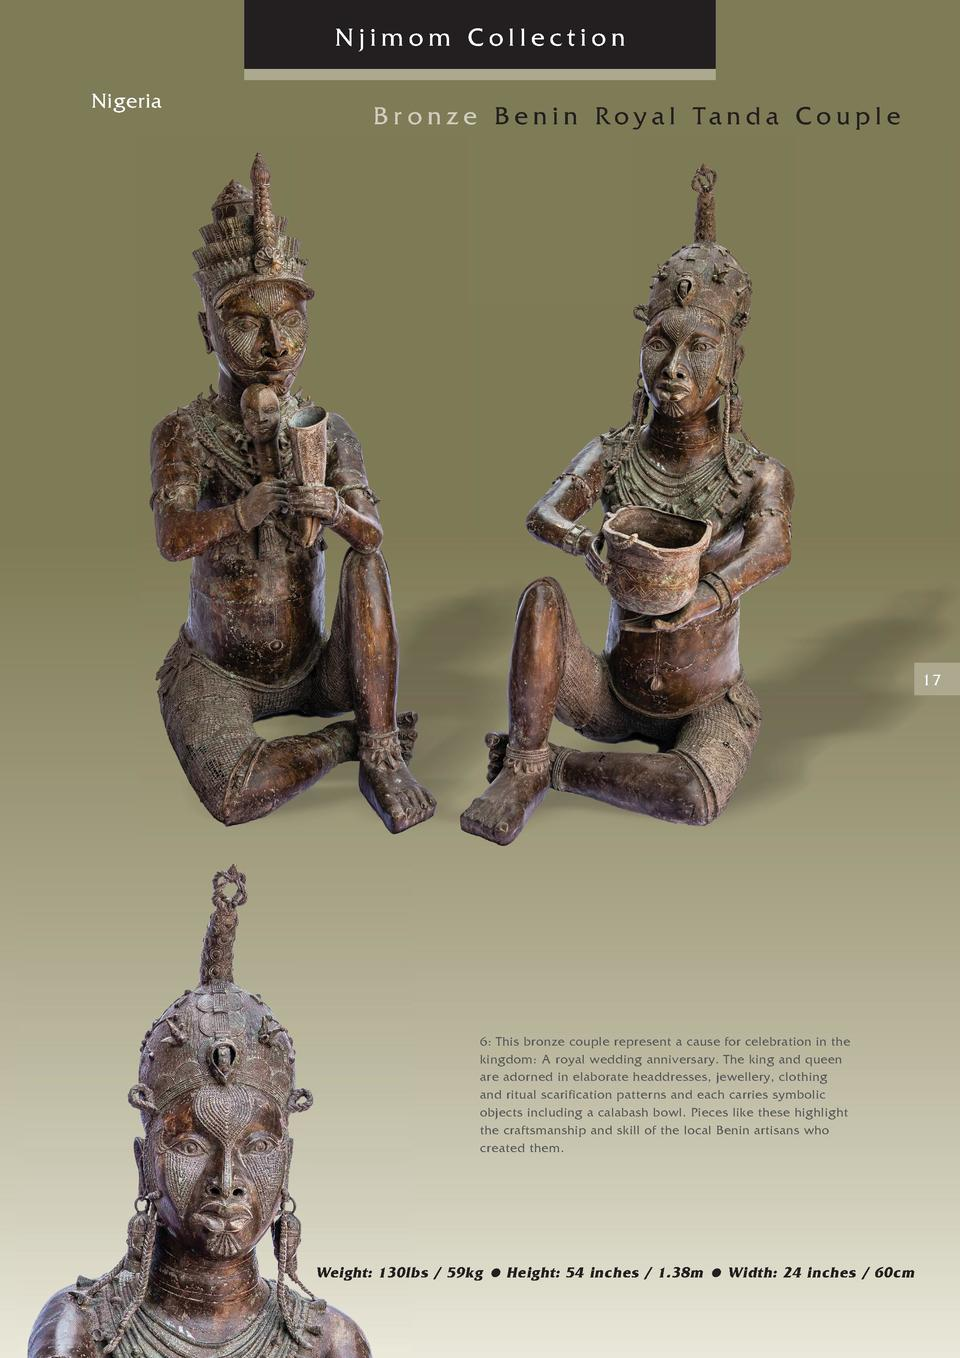 Njimom Collection Nigeria  Br onze Benin Royal Tanda Couple  17  6  This bronze couple represent a cause for celebration i...